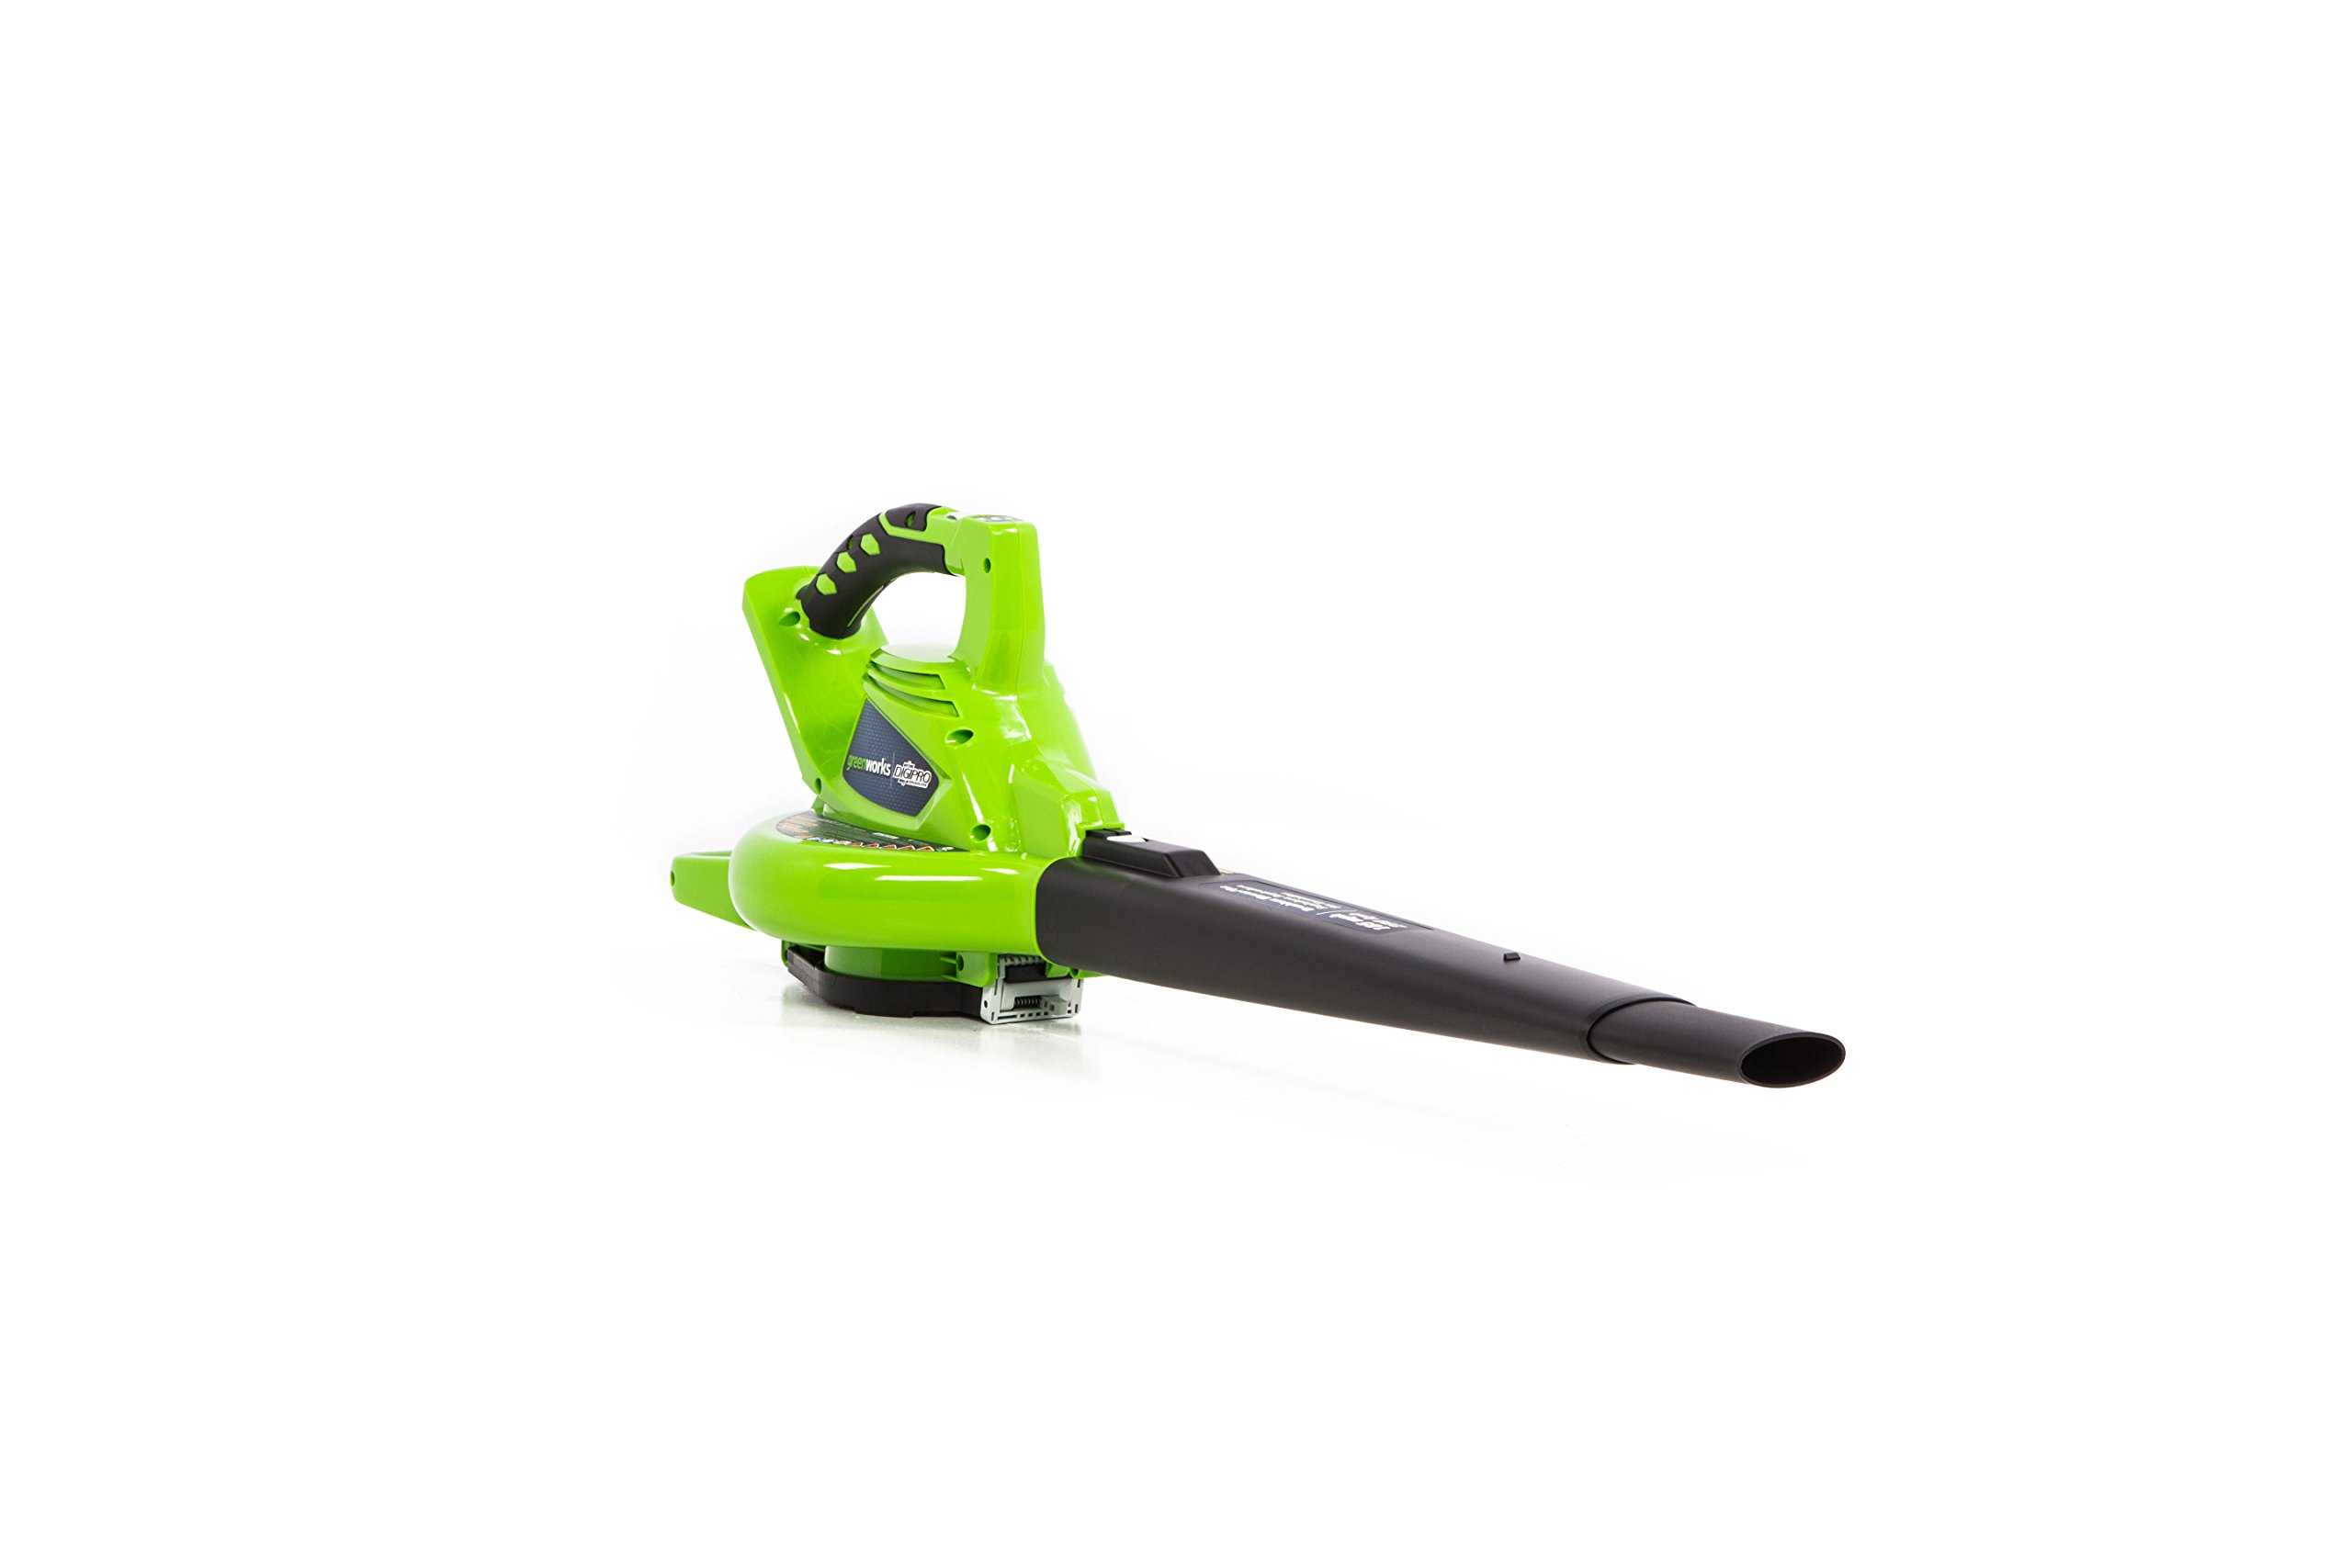 Greenworks 40V 185 MPH Variable Speed Cordless Blower Vacuum, 4.0 AH Battery Included 24322 by Greenworks (Image #16)